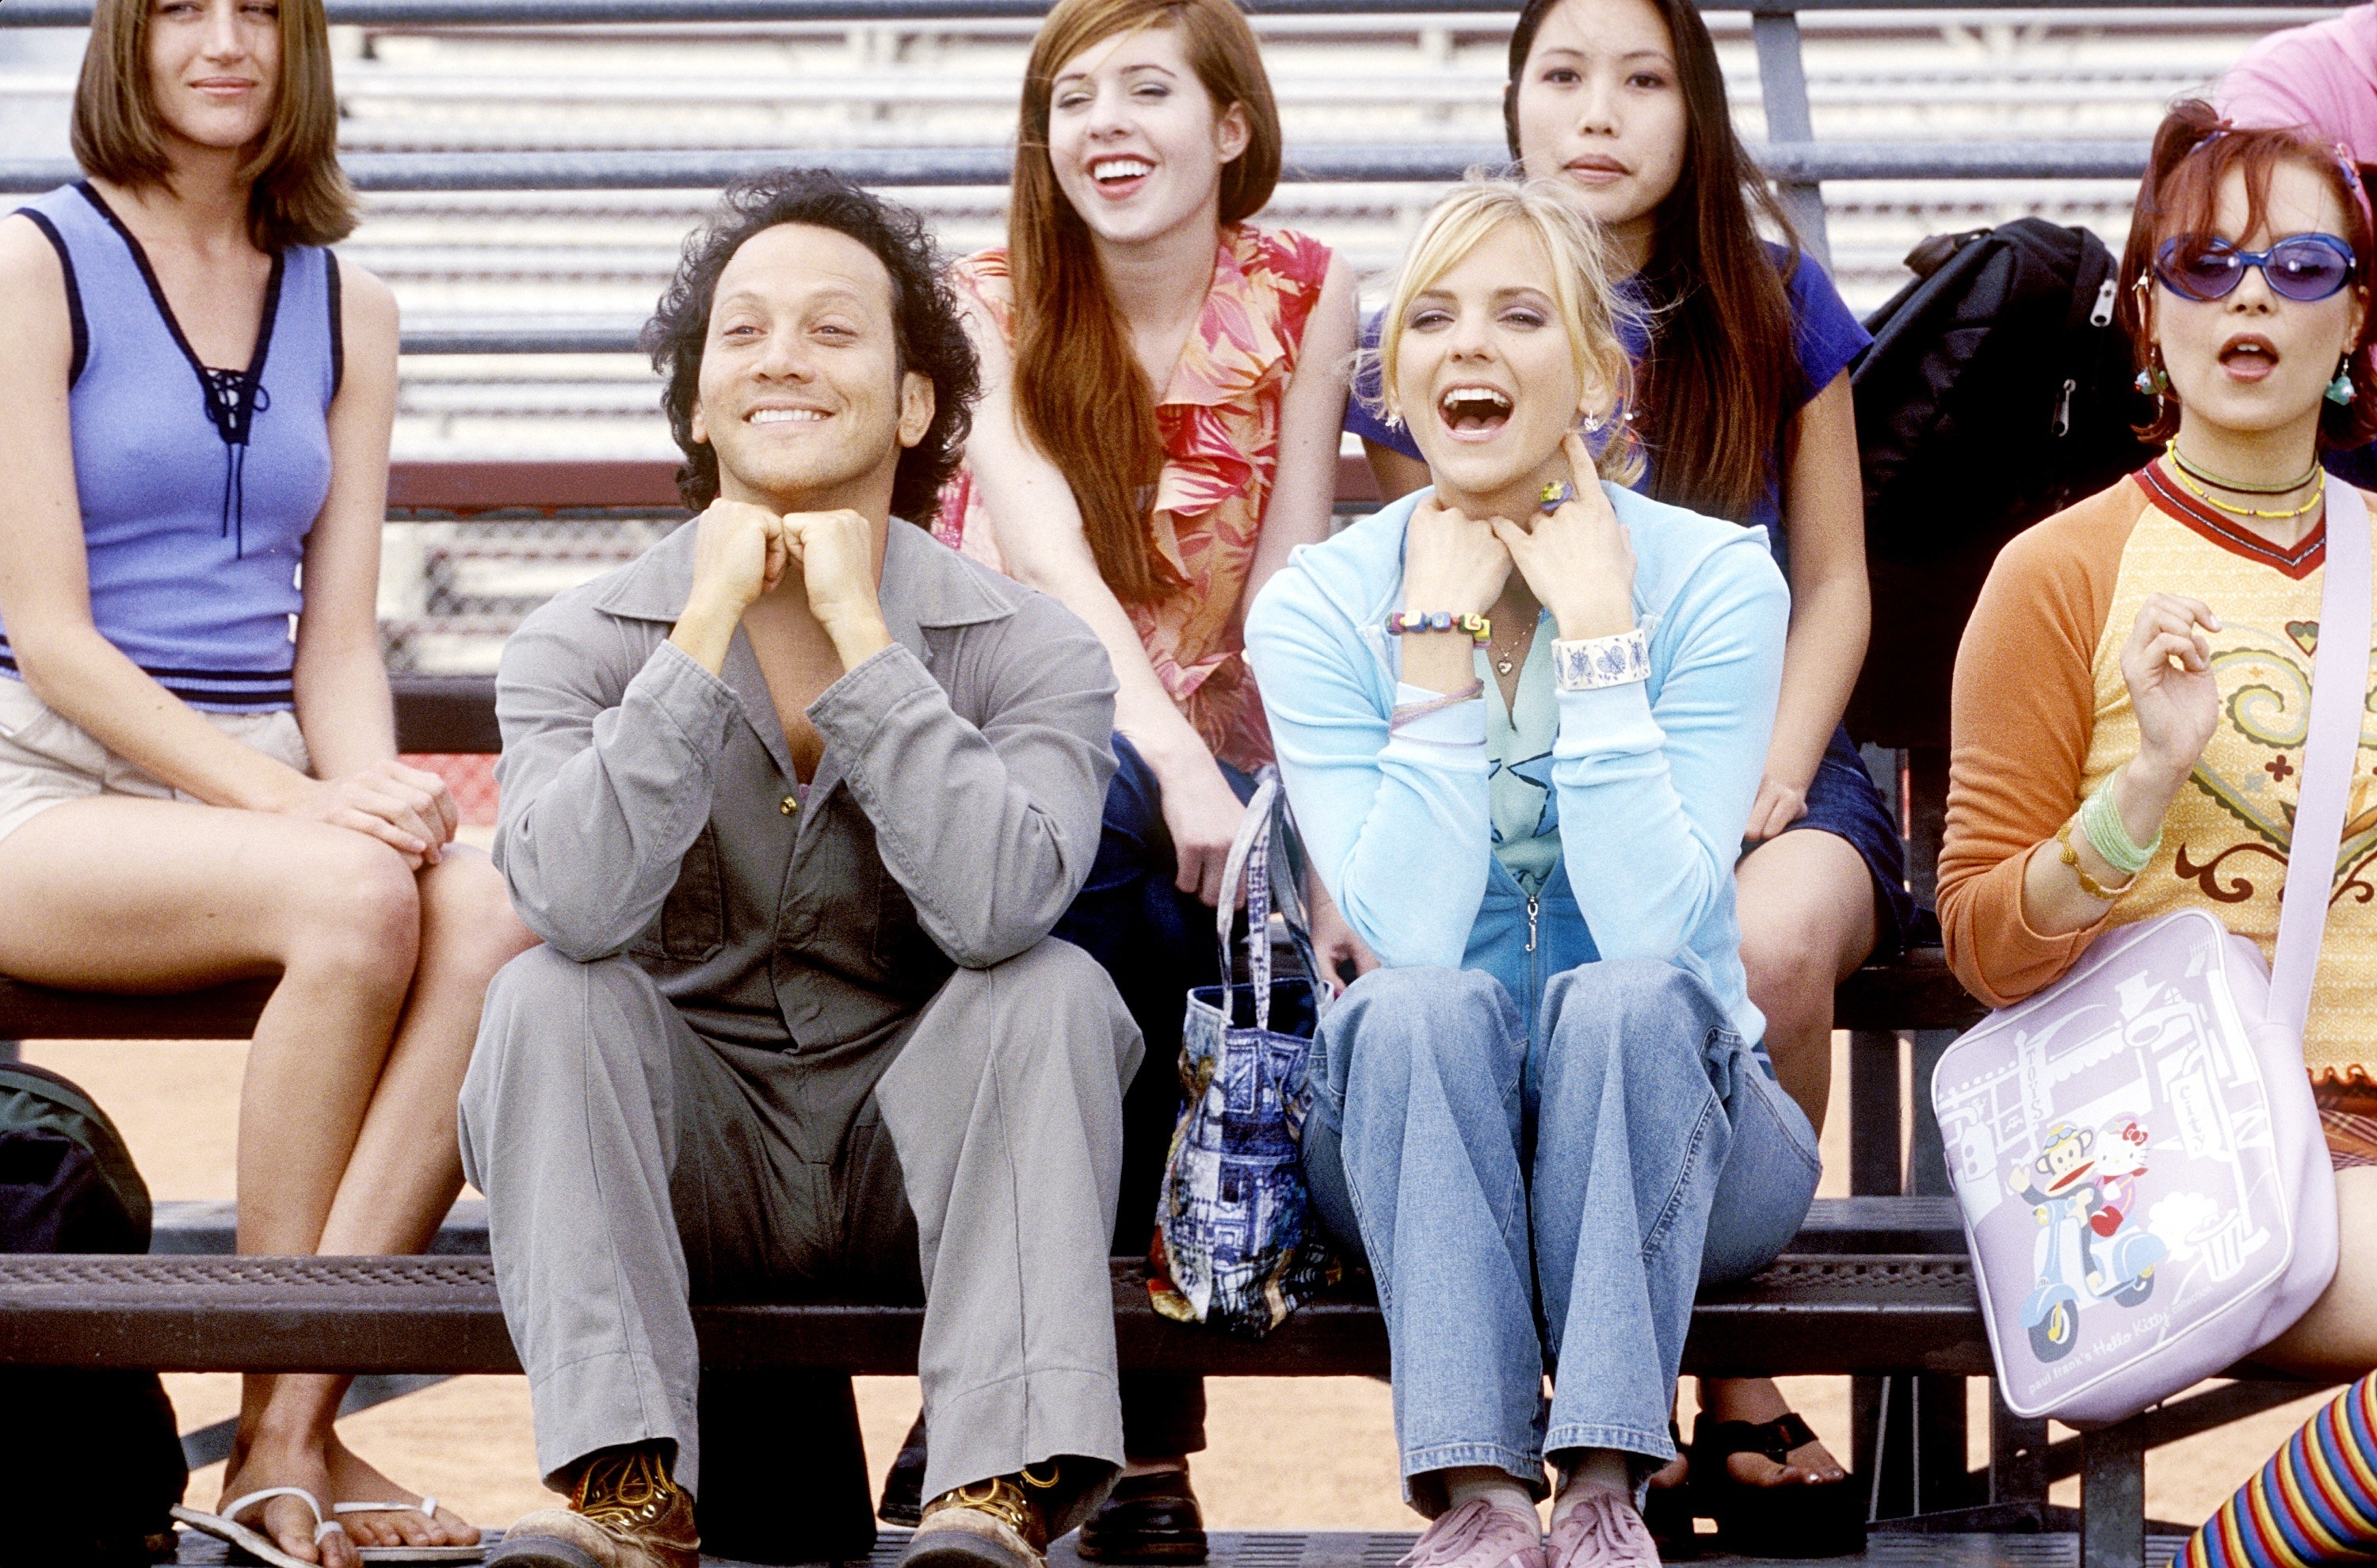 Rob Schneider and Anna Faris in the movie the hot chick